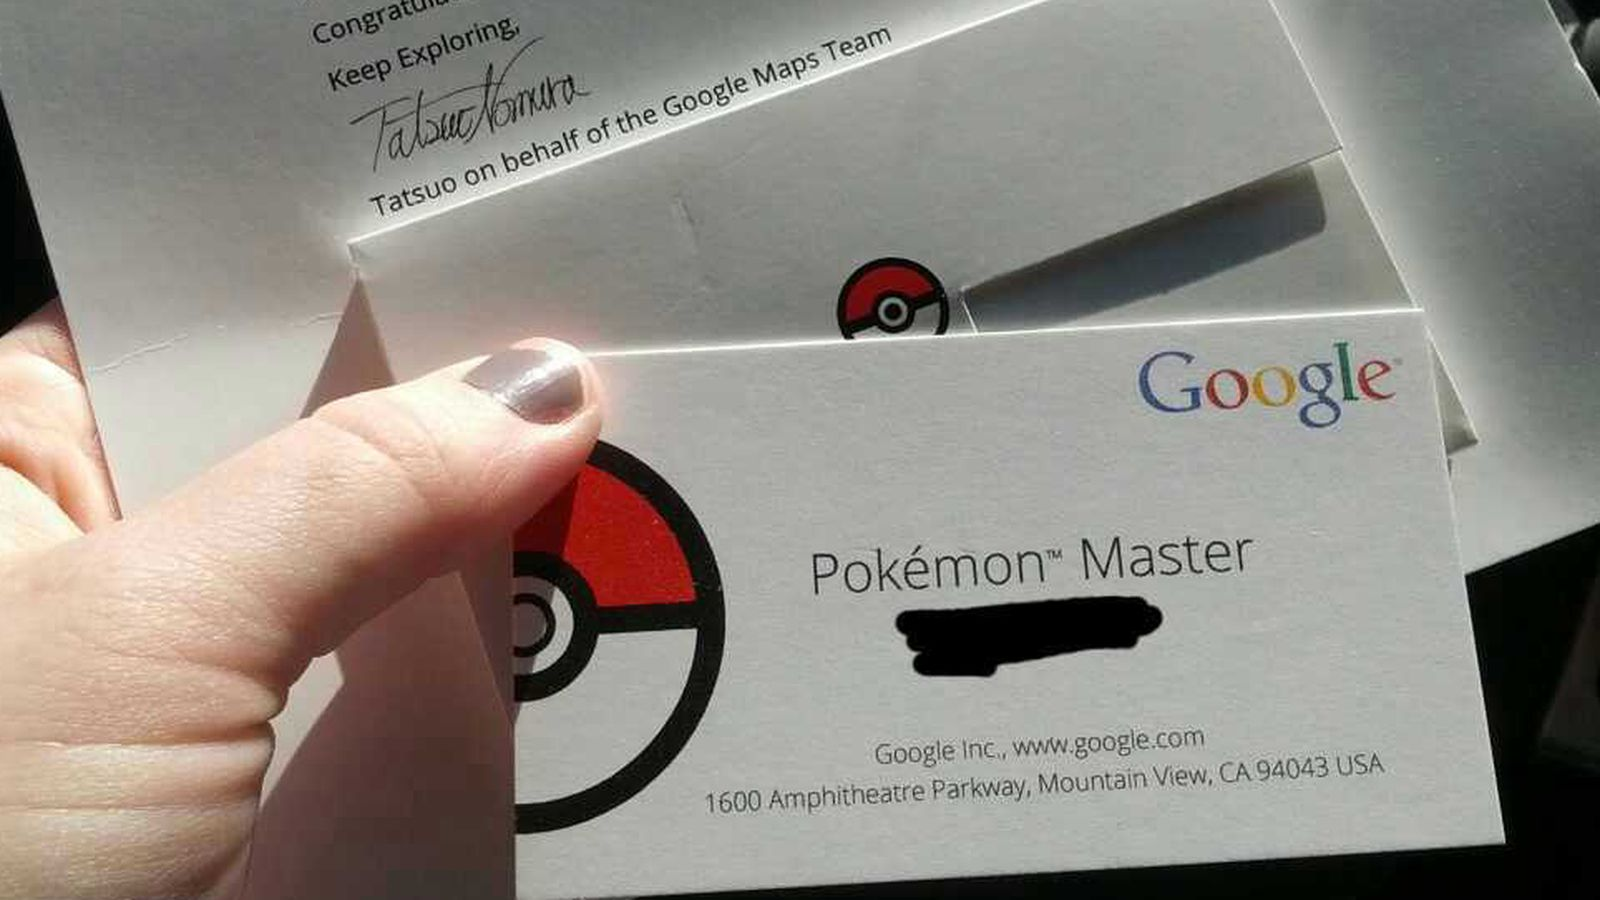 Pokémon Master is probably the easiest job to land at Google - The ...